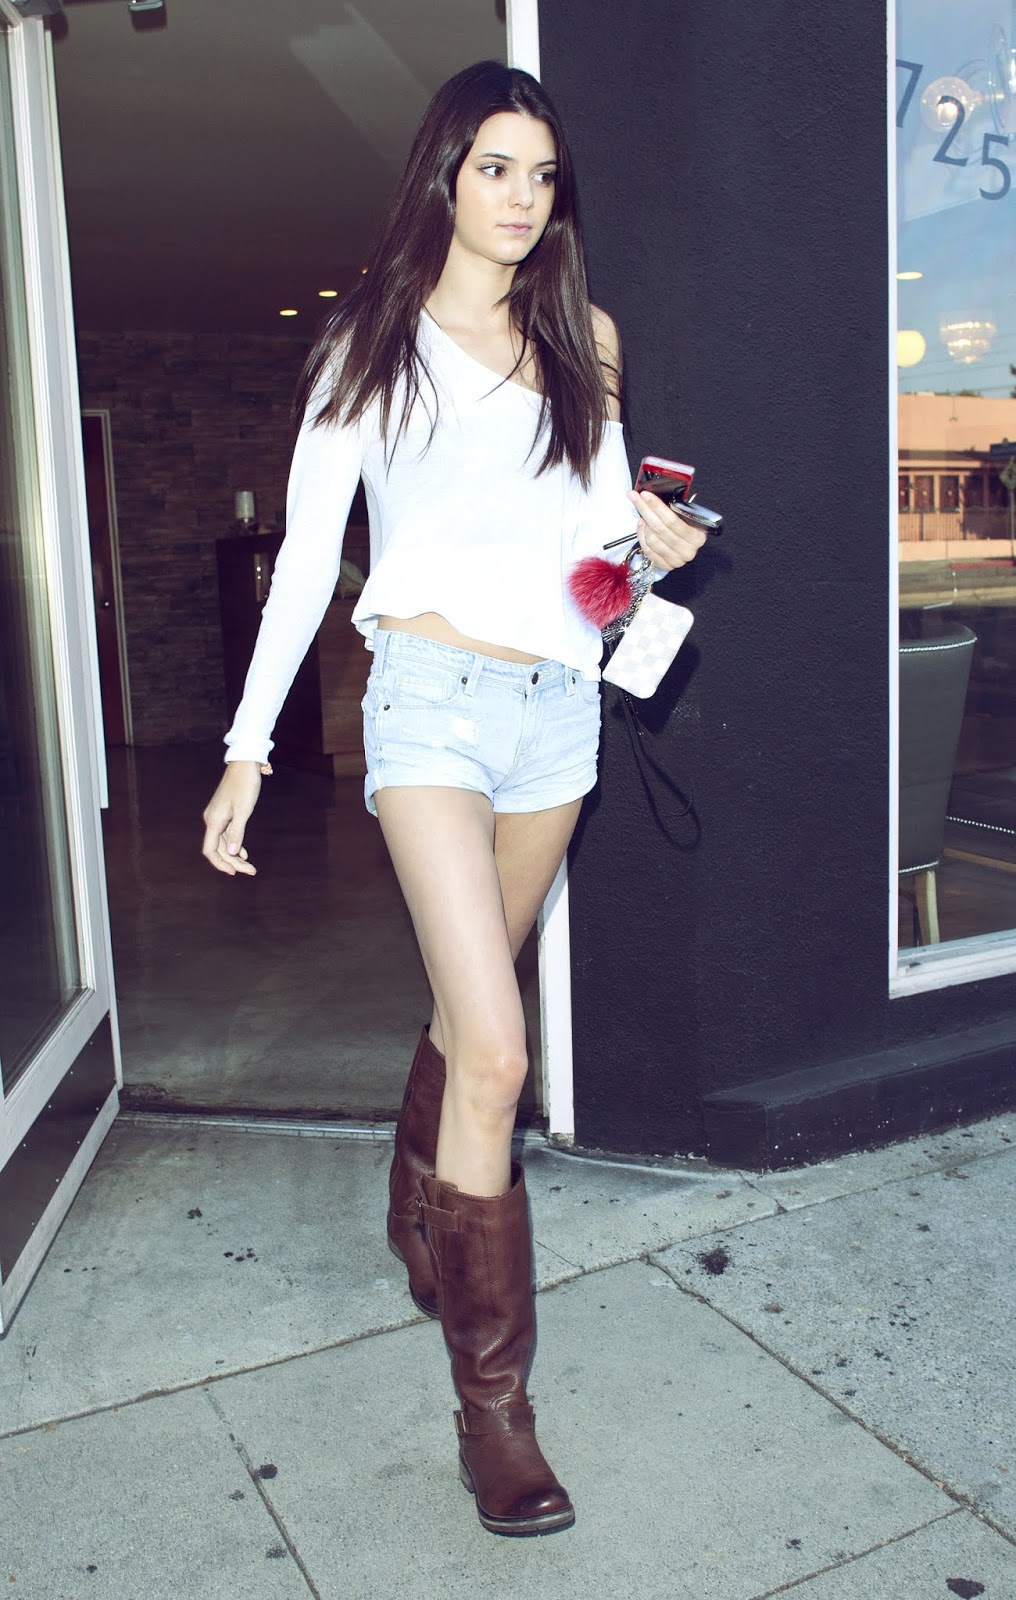 13 - Out and About with Kylie Jenner in Hollywood California on June 16, 2012